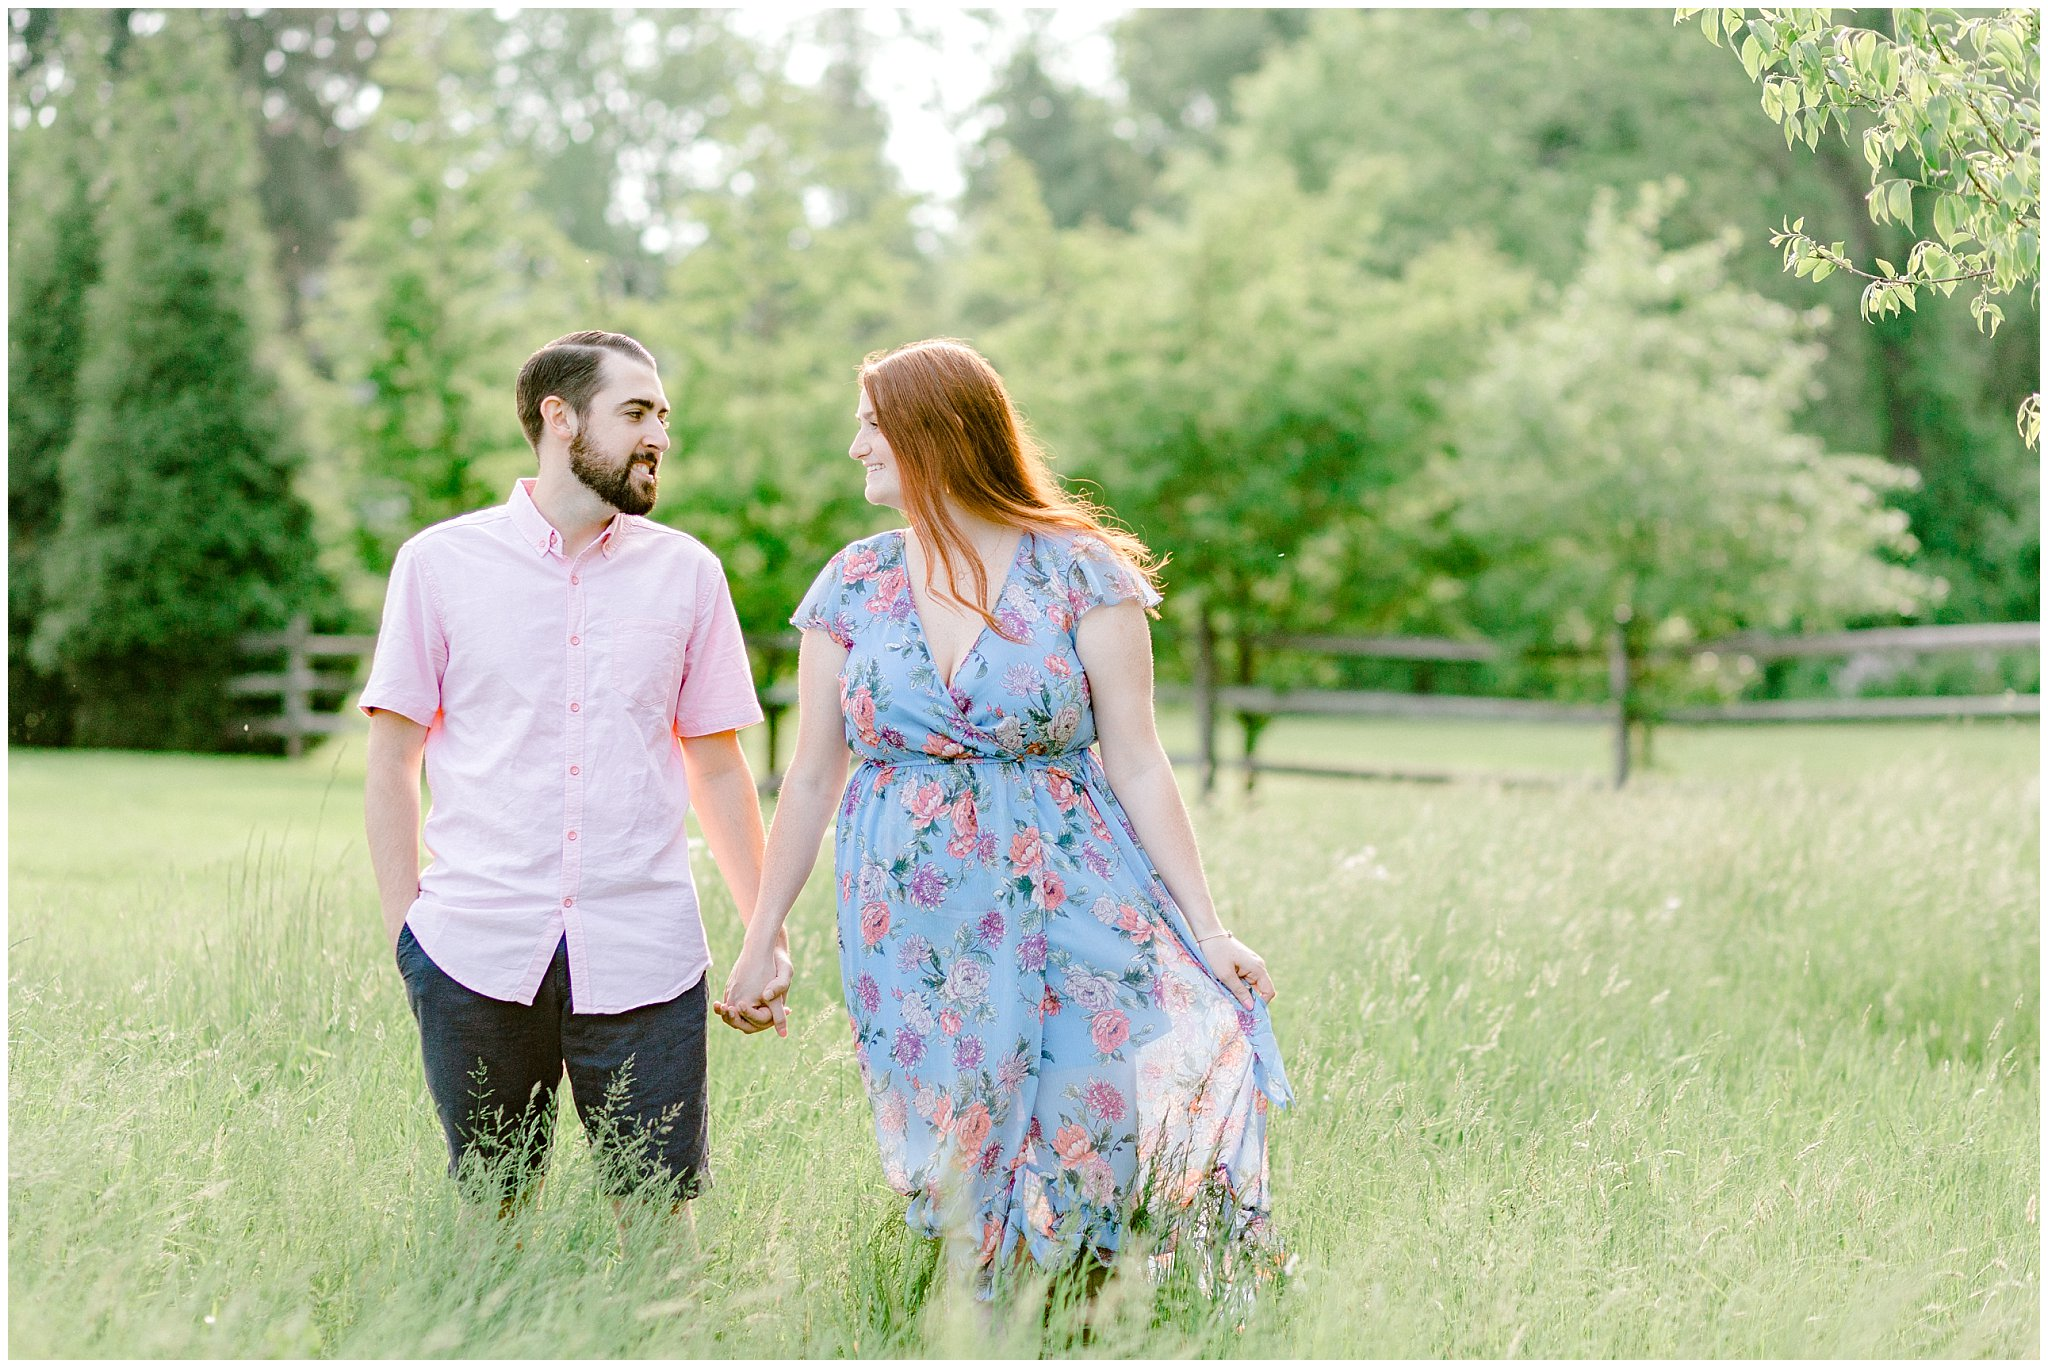 Manor house at prophecy Creek Blue Bell PA wedding venue summertime field engagement session lehigh valley based wedding and lifestyle photographe_0012.jpg